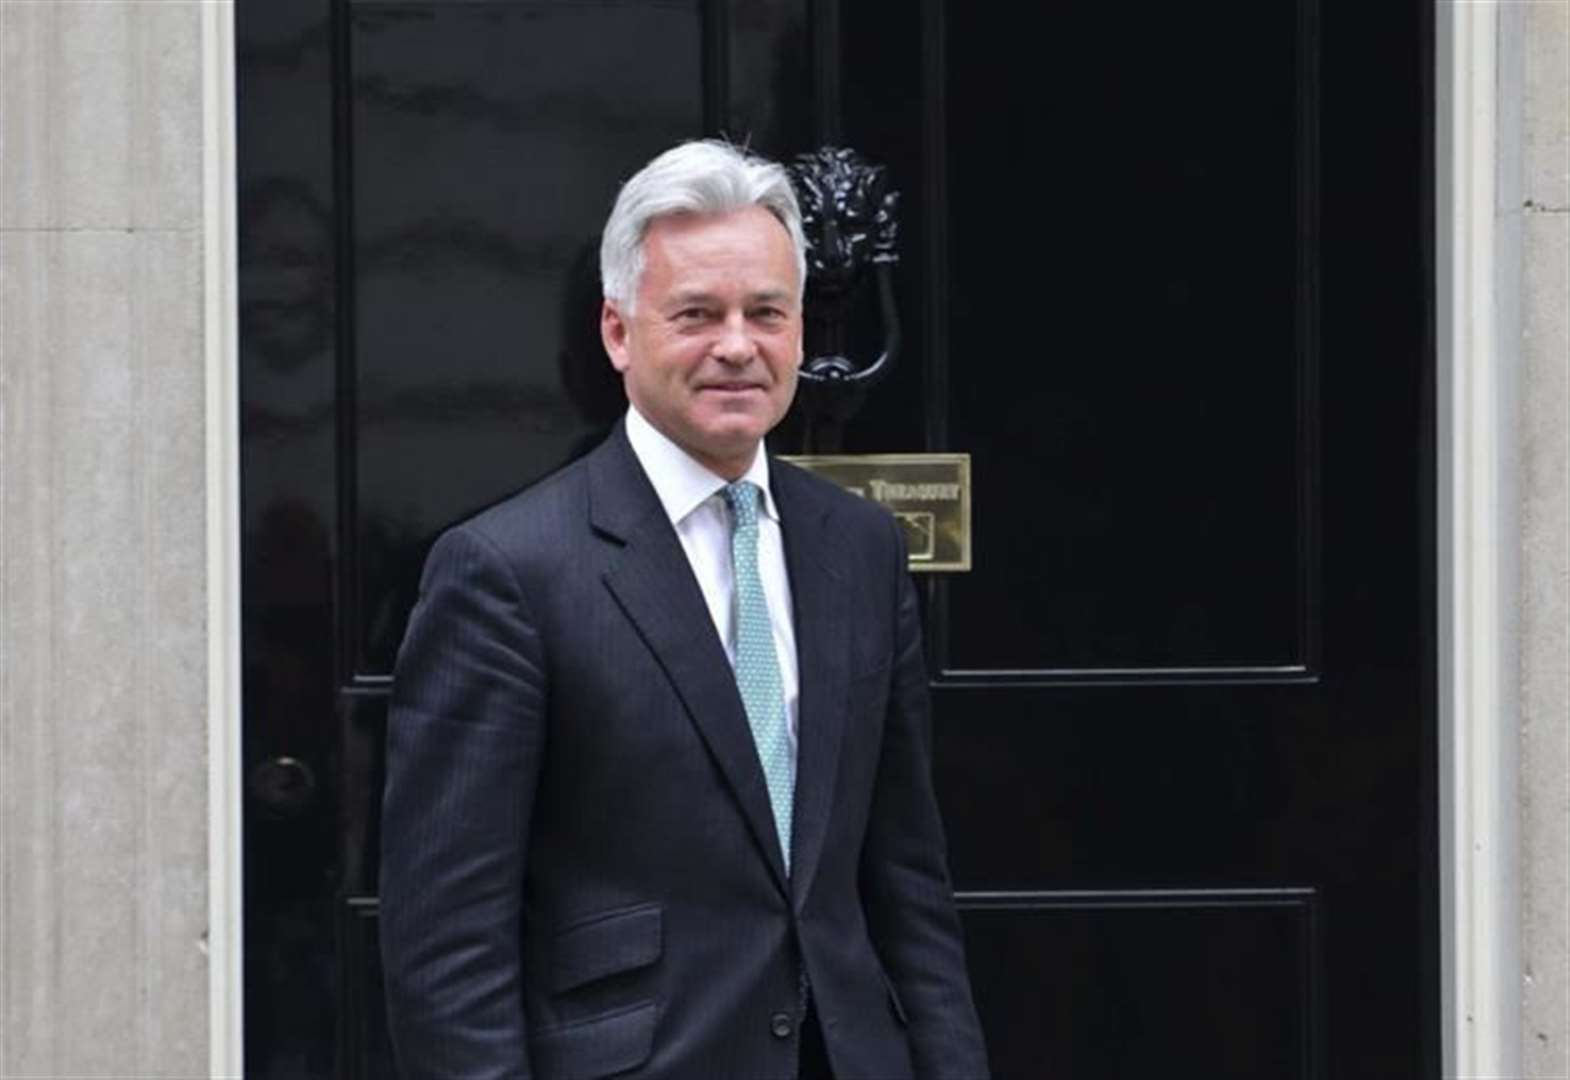 MP Sir Alan Duncan to stand down